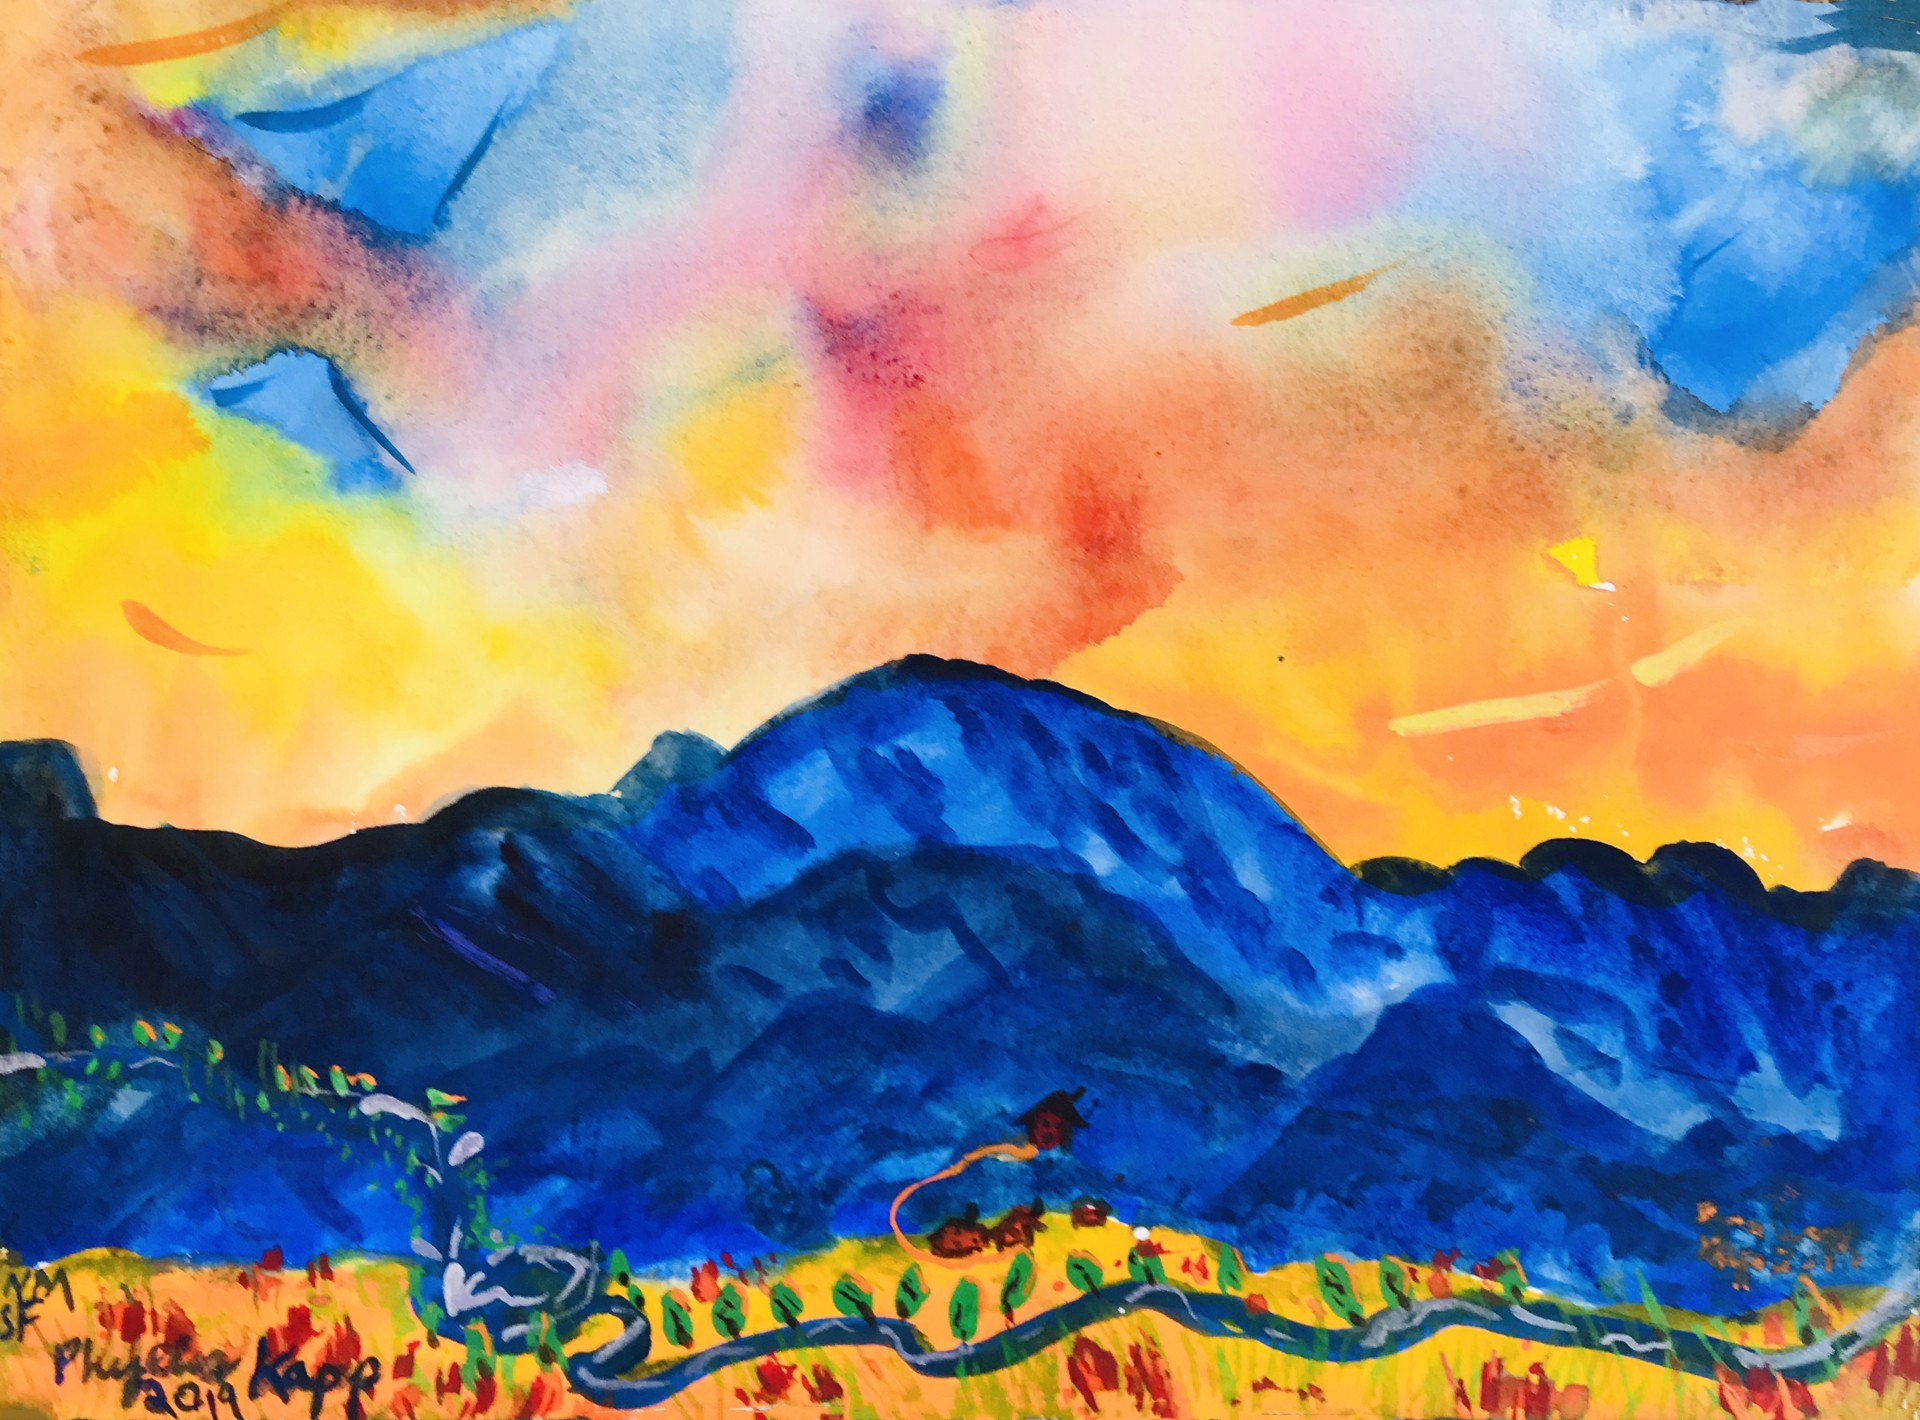 Skyburst (Auction: 10am - 3pm August 14th)    by Phyllis Kapp